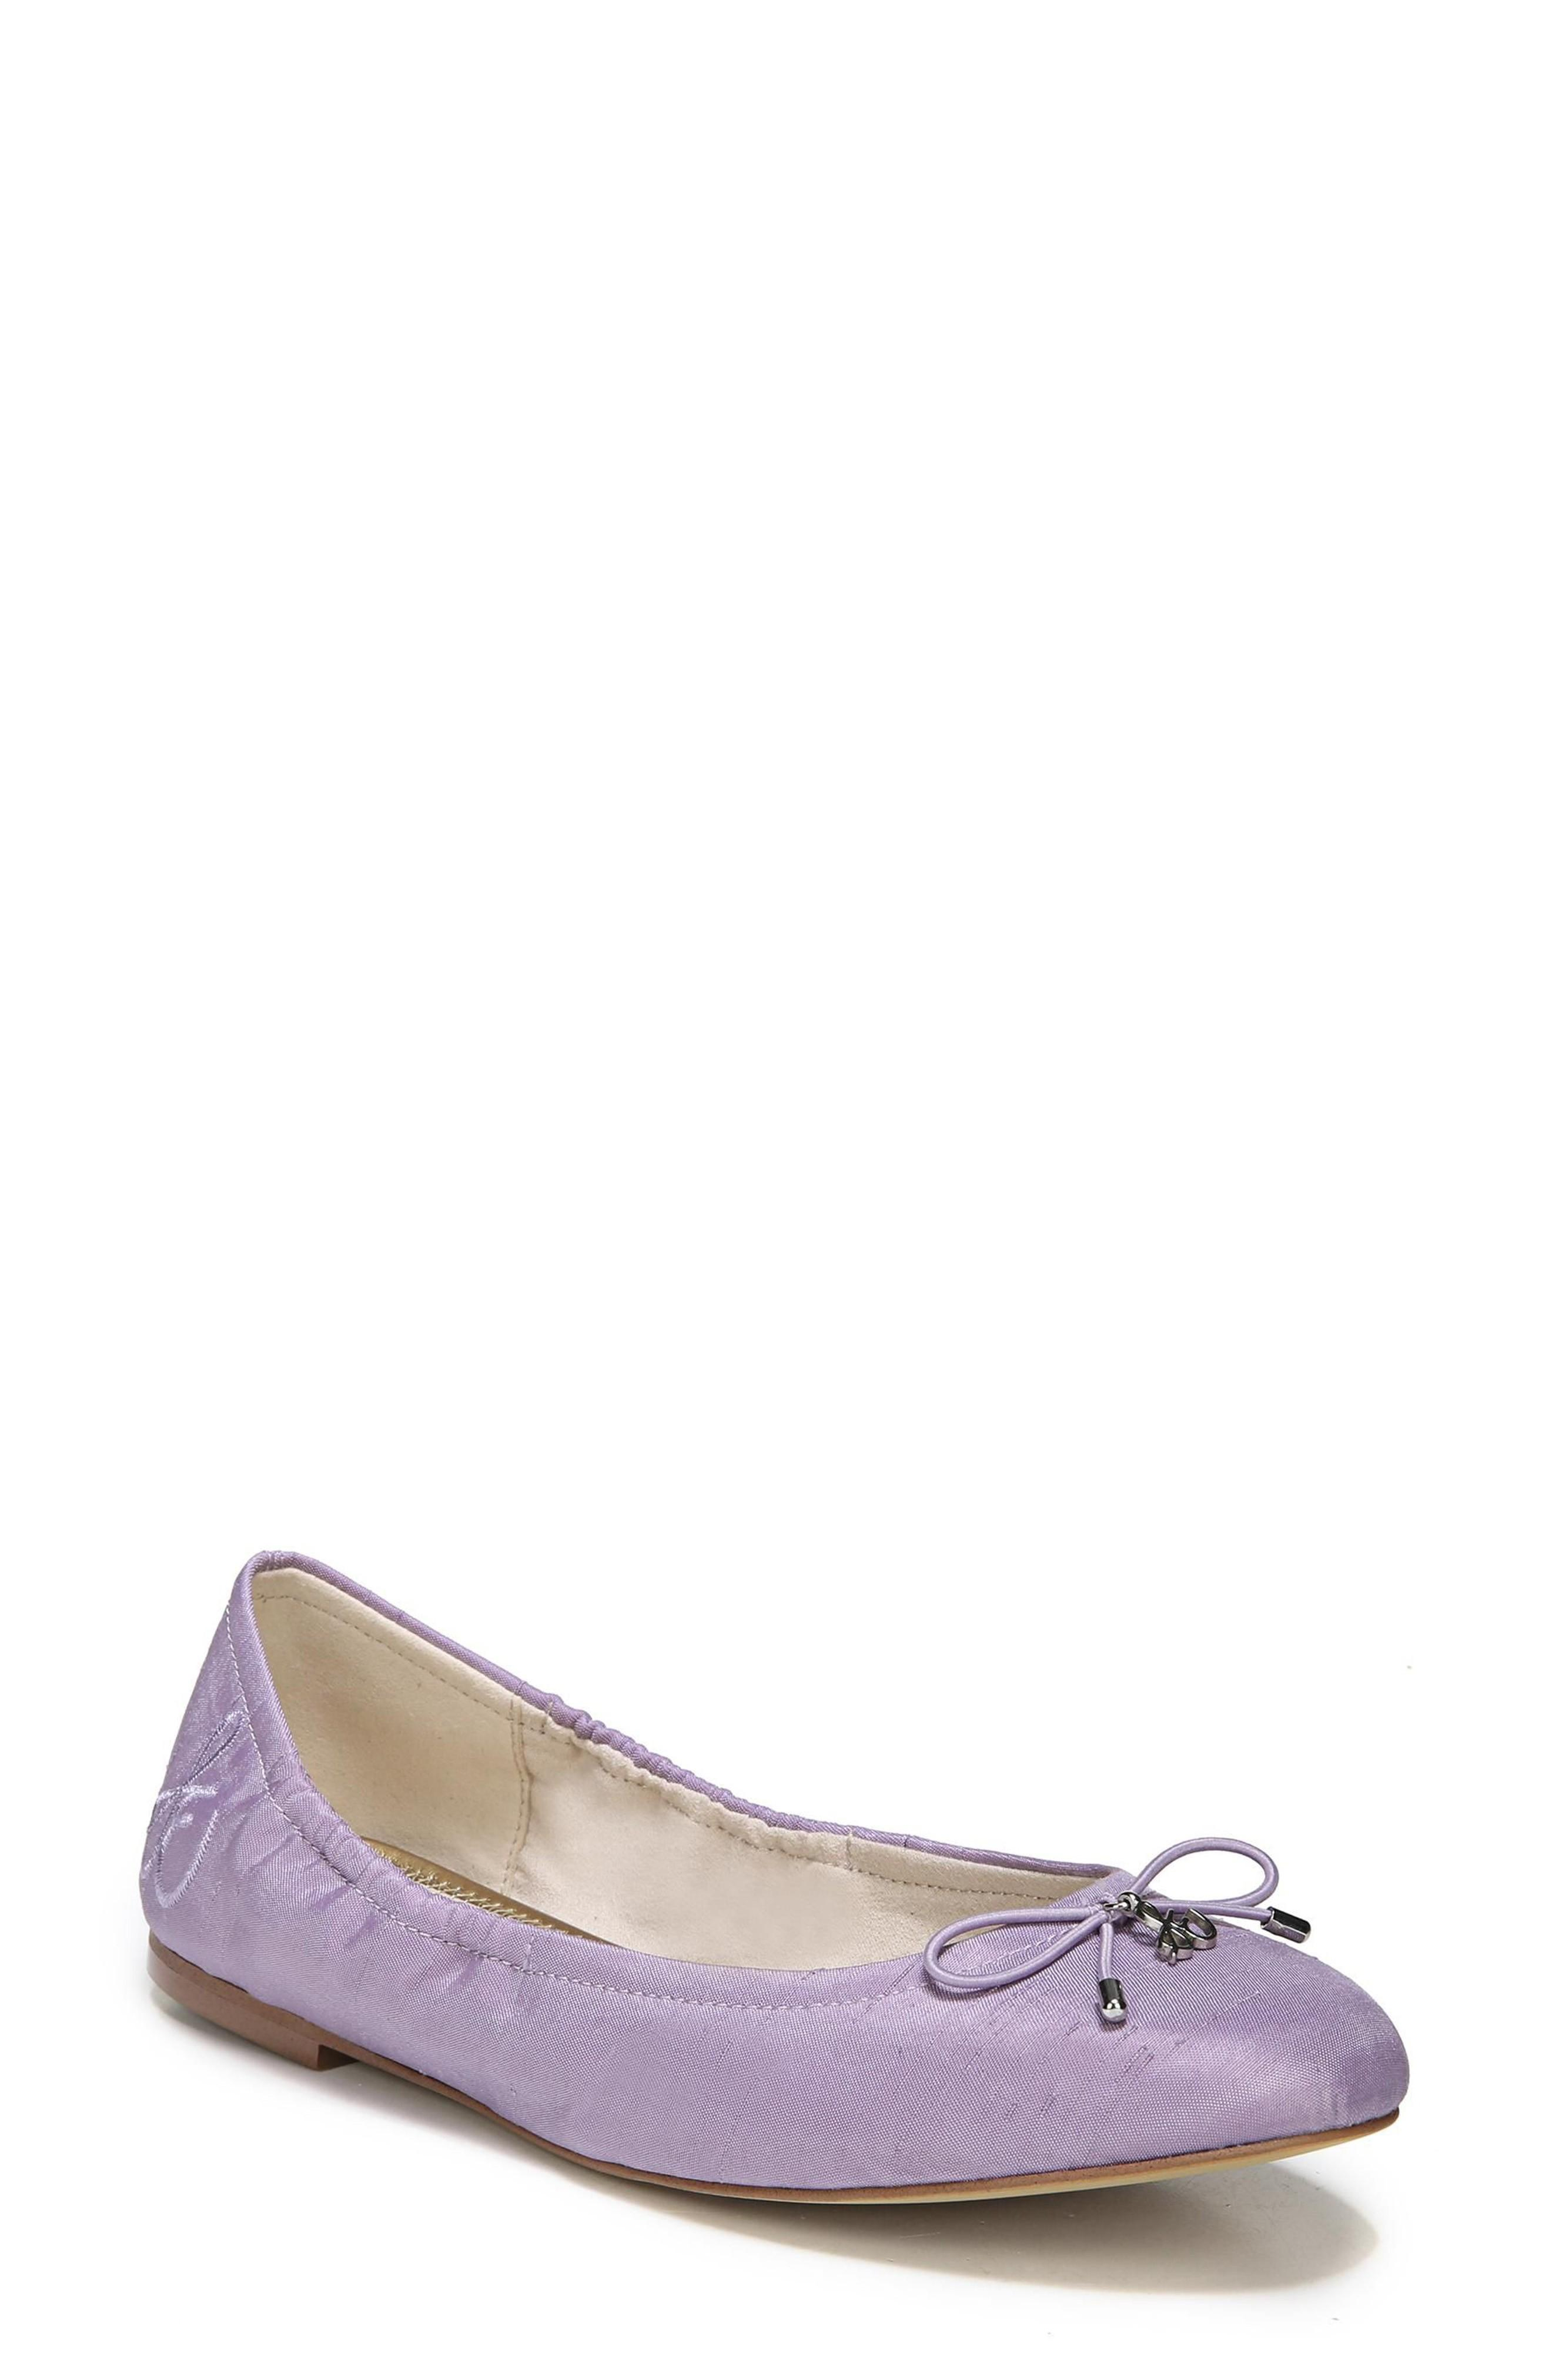 3ca2ad341ceb4 A delicate logo charm adorns the bow-trimmed toe of a charming ballet flat.  Style Name  Sam Edelman Felicia Flat. Style Number  372142 11.